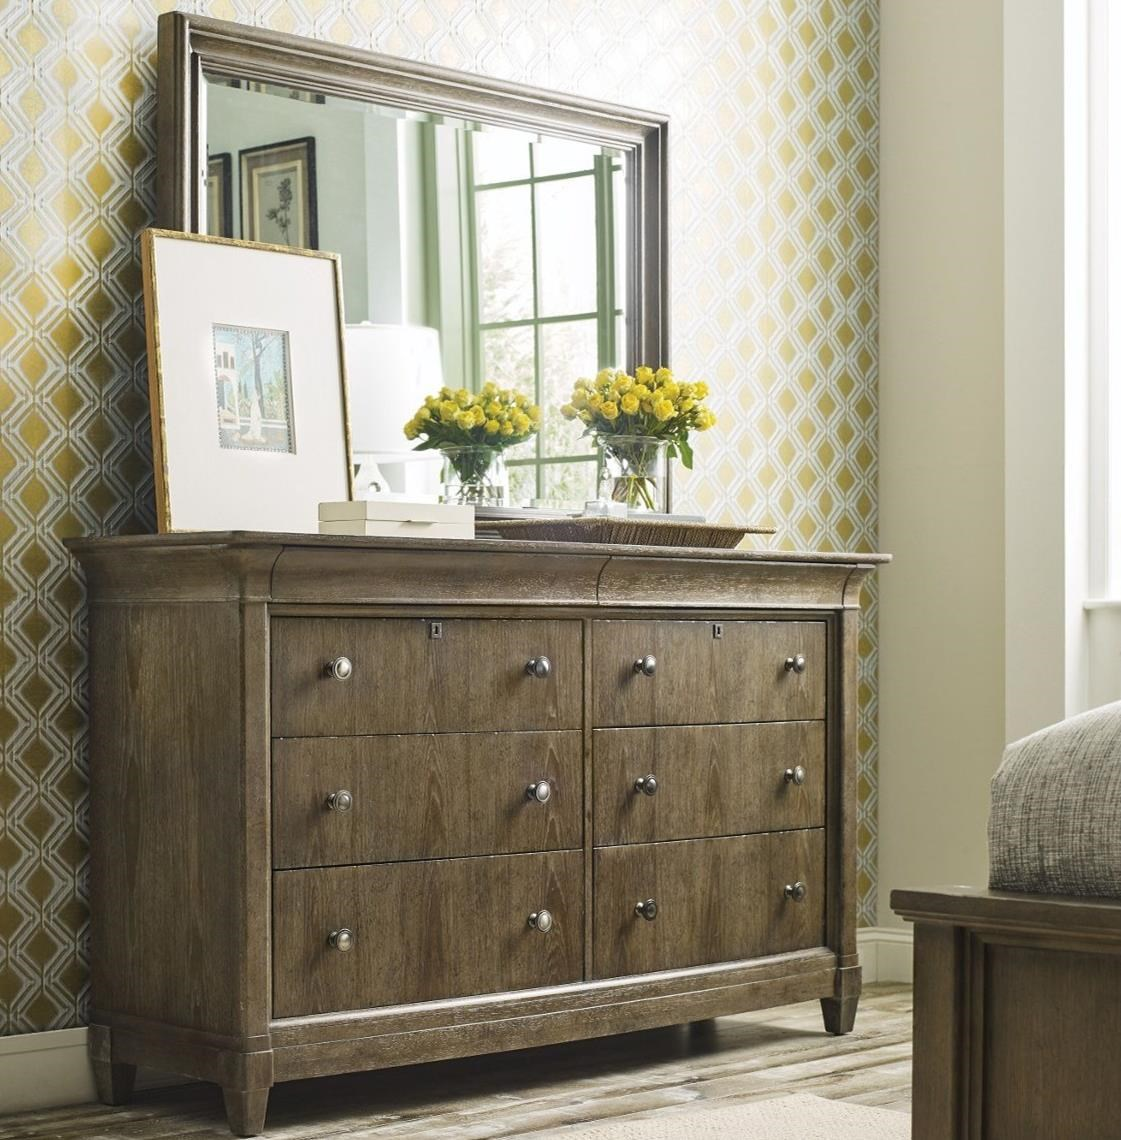 Anson Dresser + Mirror Set by American Drew at Alison Craig Home Furnishings